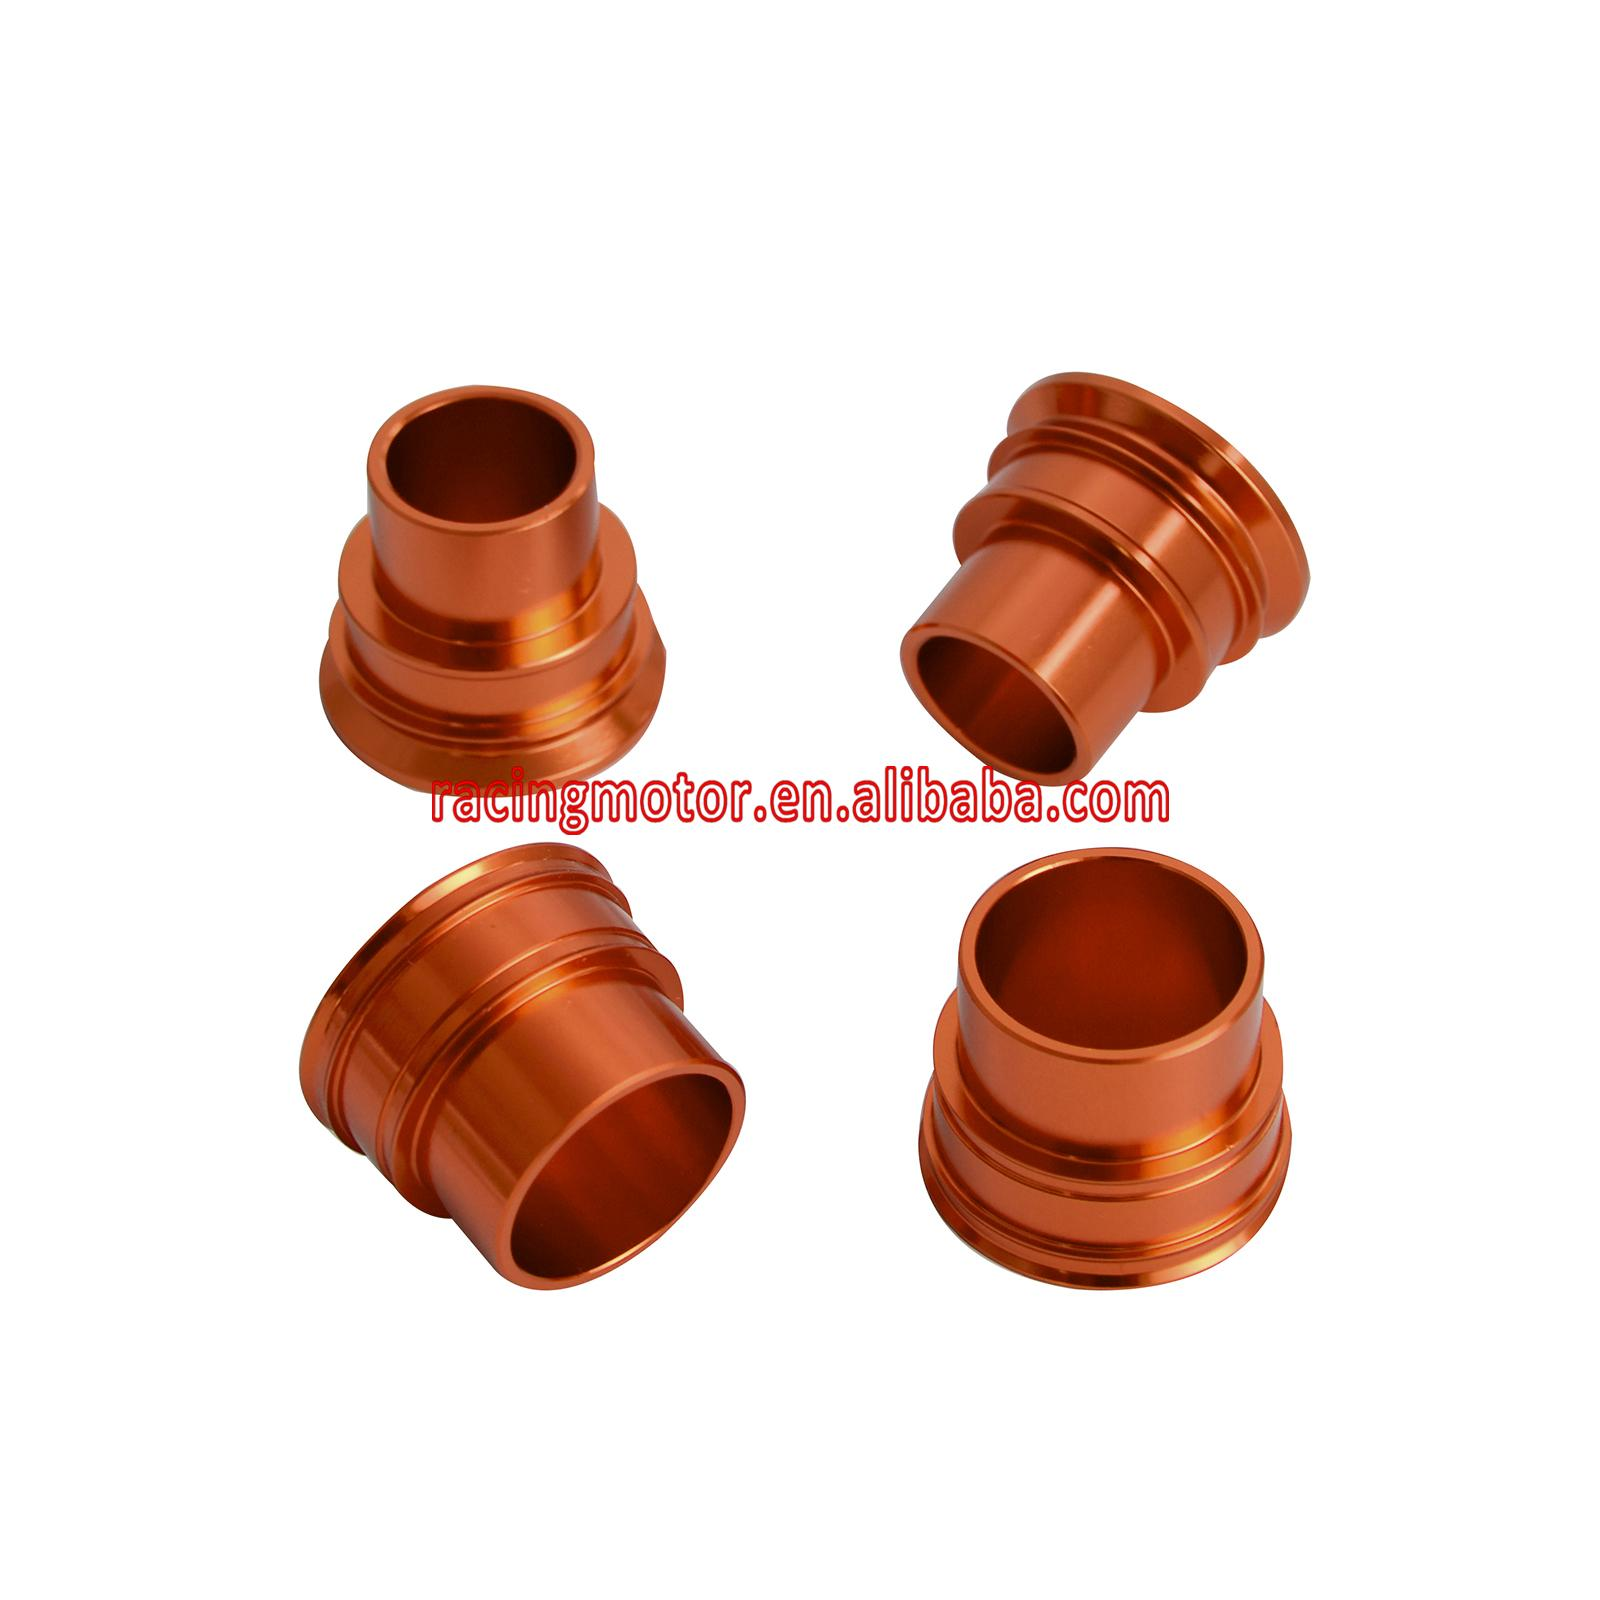 CNC (Billet Aluminum) Front and Rear Wheel Spacers/ Hub Collars For KTM 125-530 EXC/EXC-F/EXC-W/XC-W/SMR 2003-2015<br><br>Aliexpress